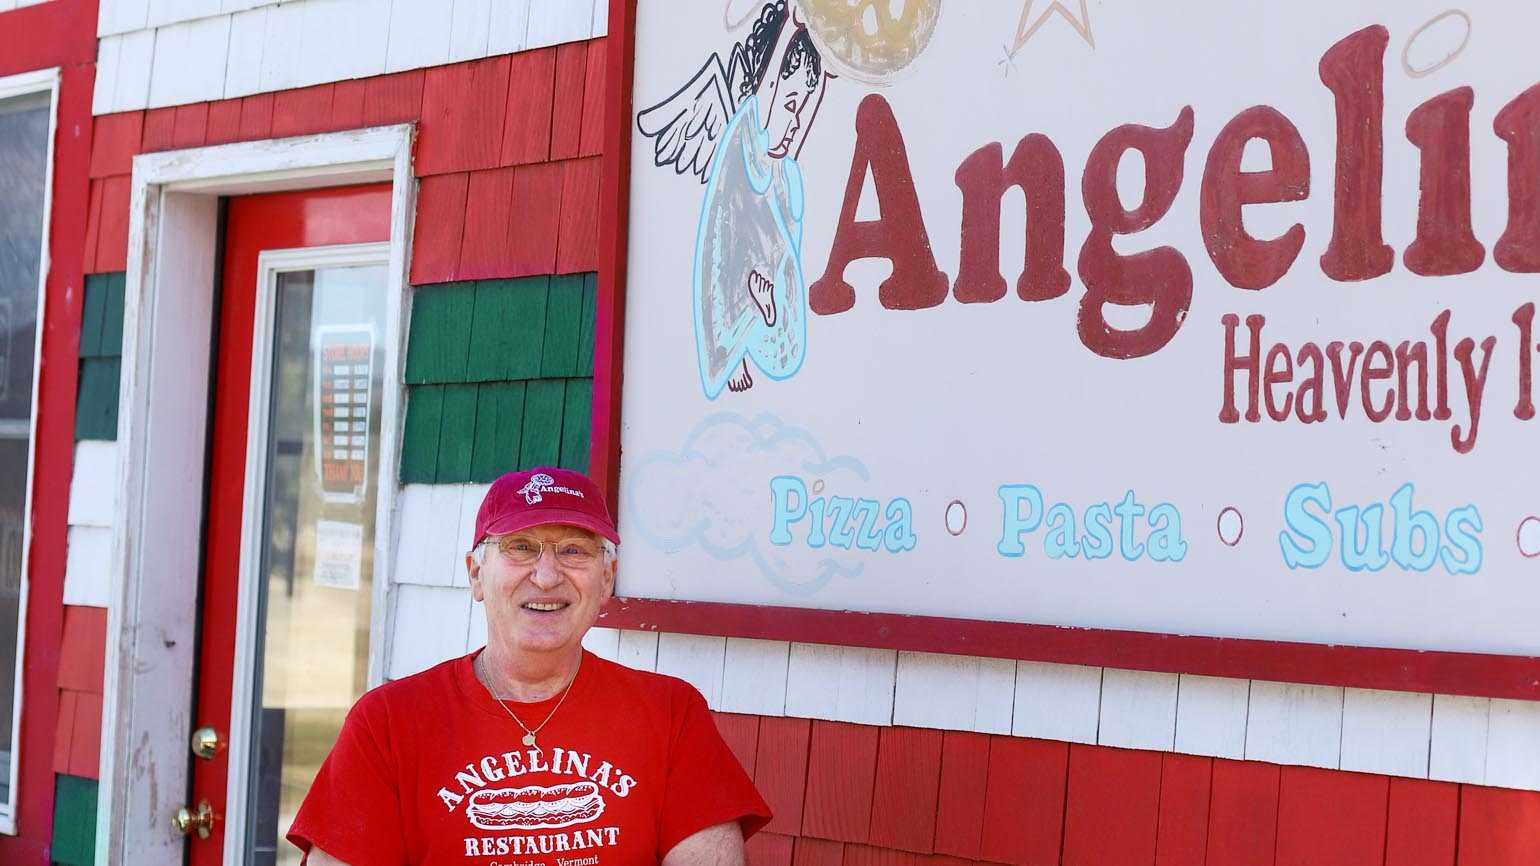 Paul standing by the Angelina sign in front of his business.